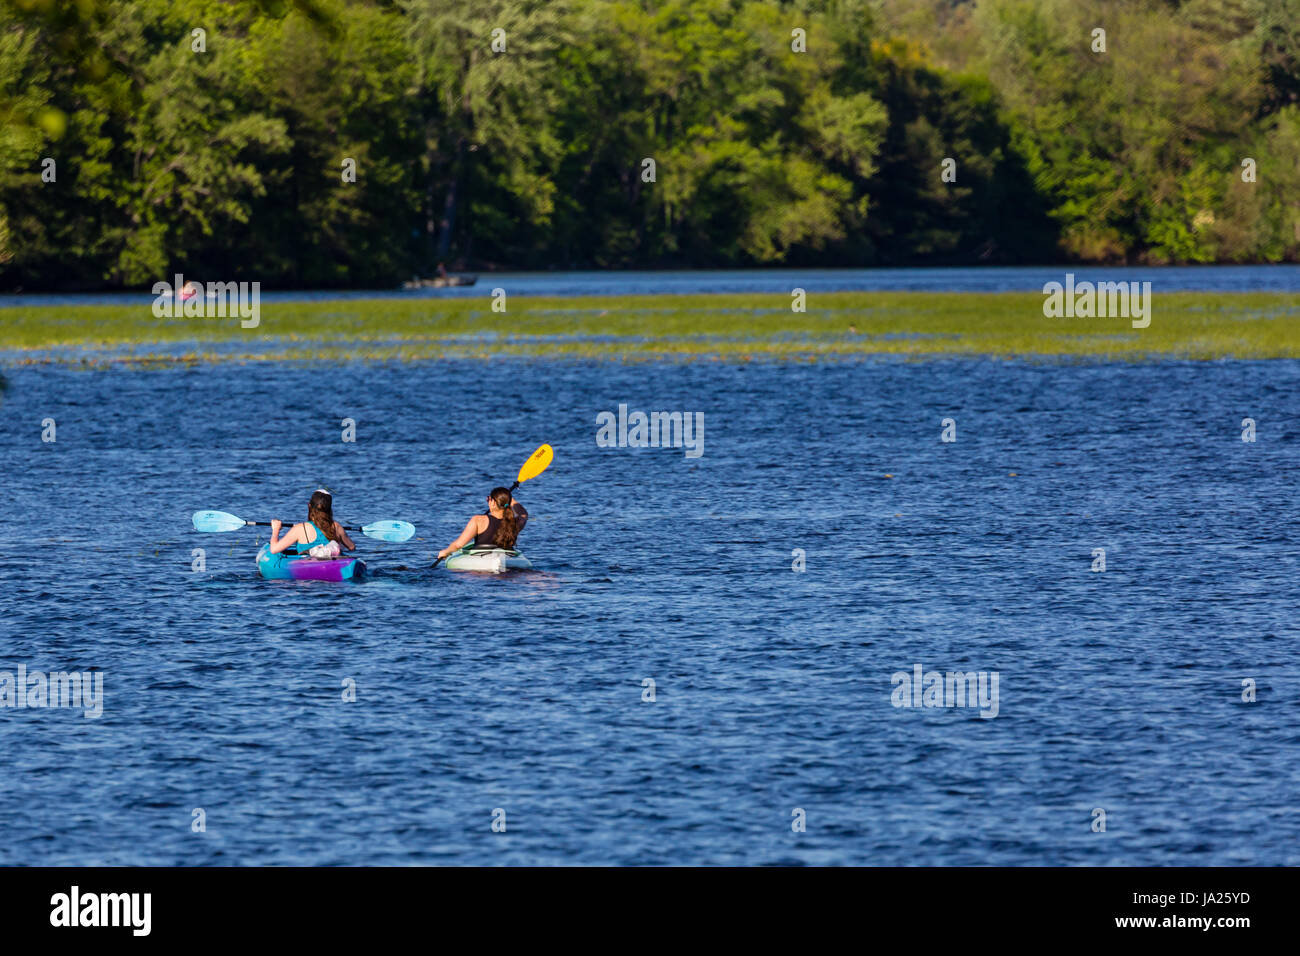 Two young women paddling kayaks across a lake in Wisconsin - Stock Image